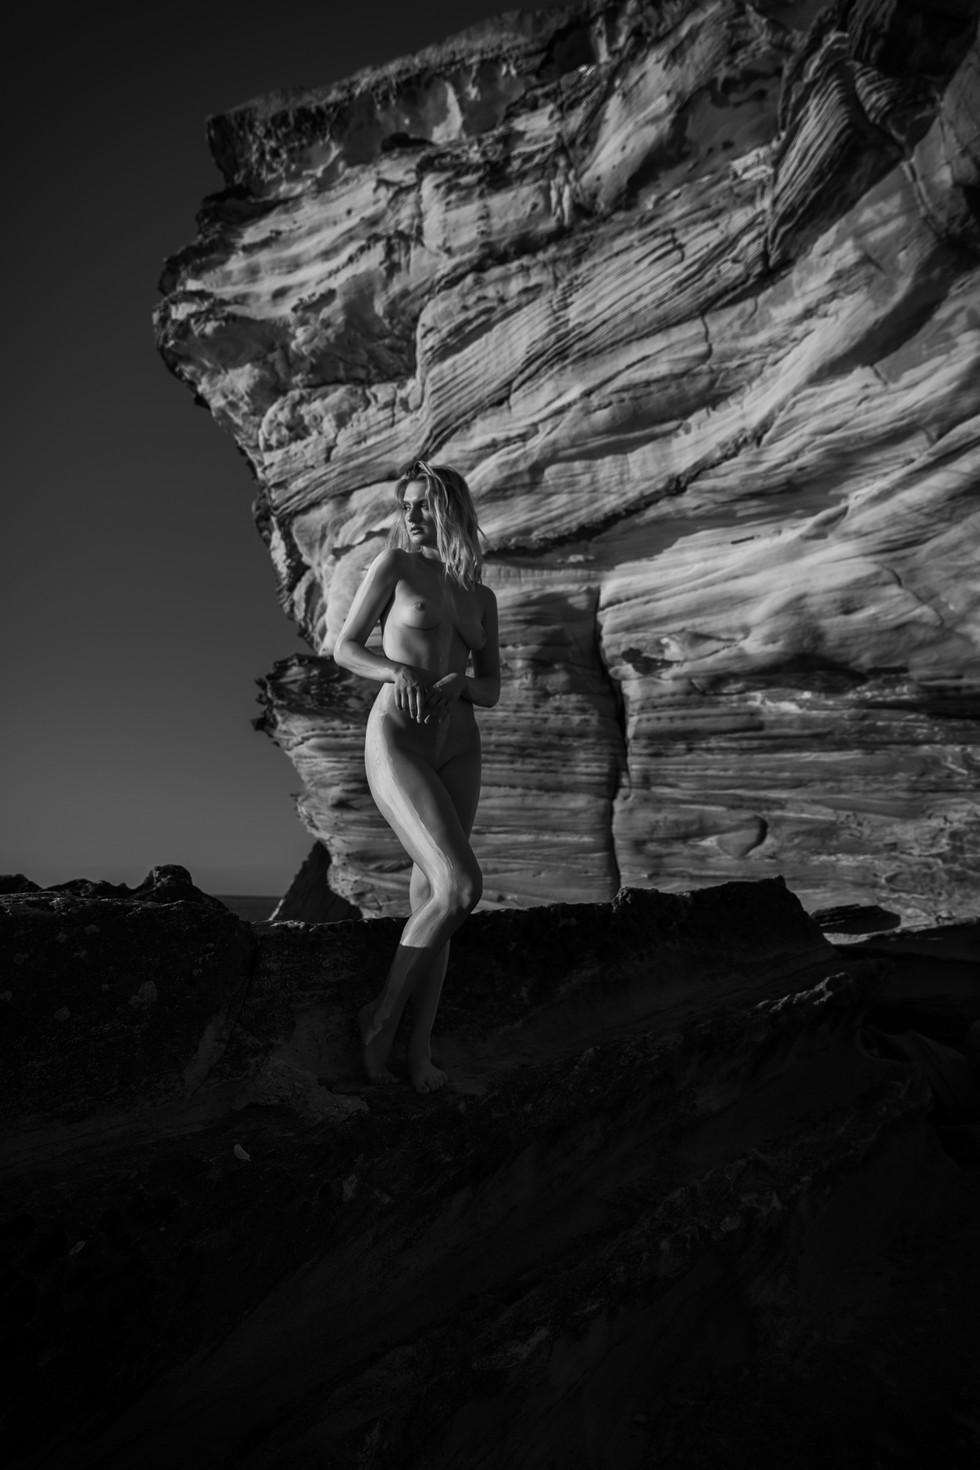 Brooke_by_CoogeePhotography-432225.jpg